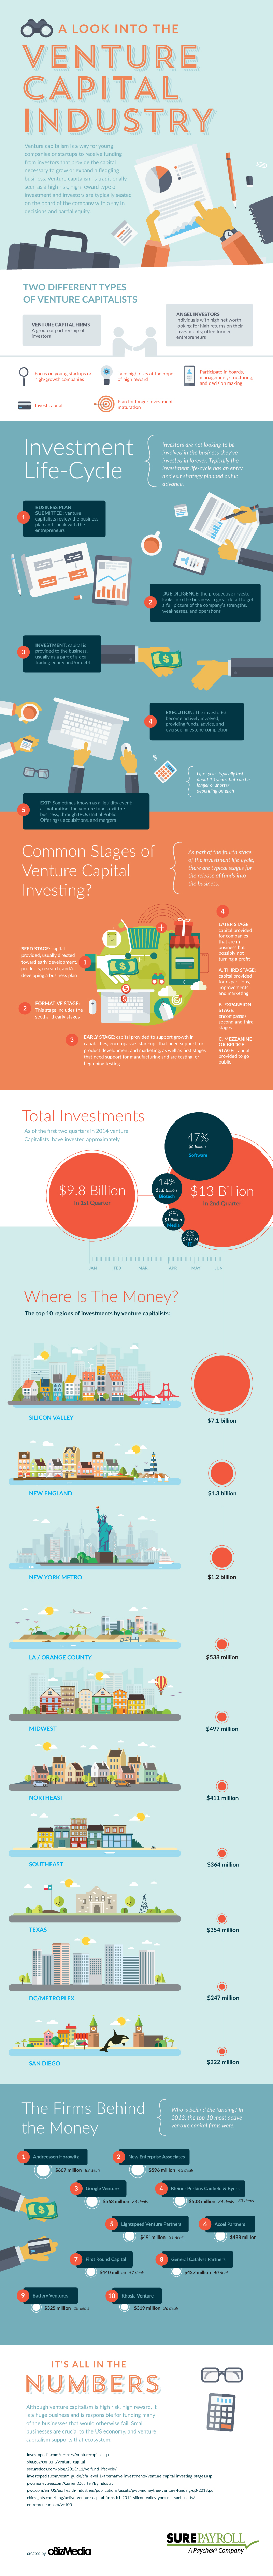 A Look Inside the Venture Capital Industry